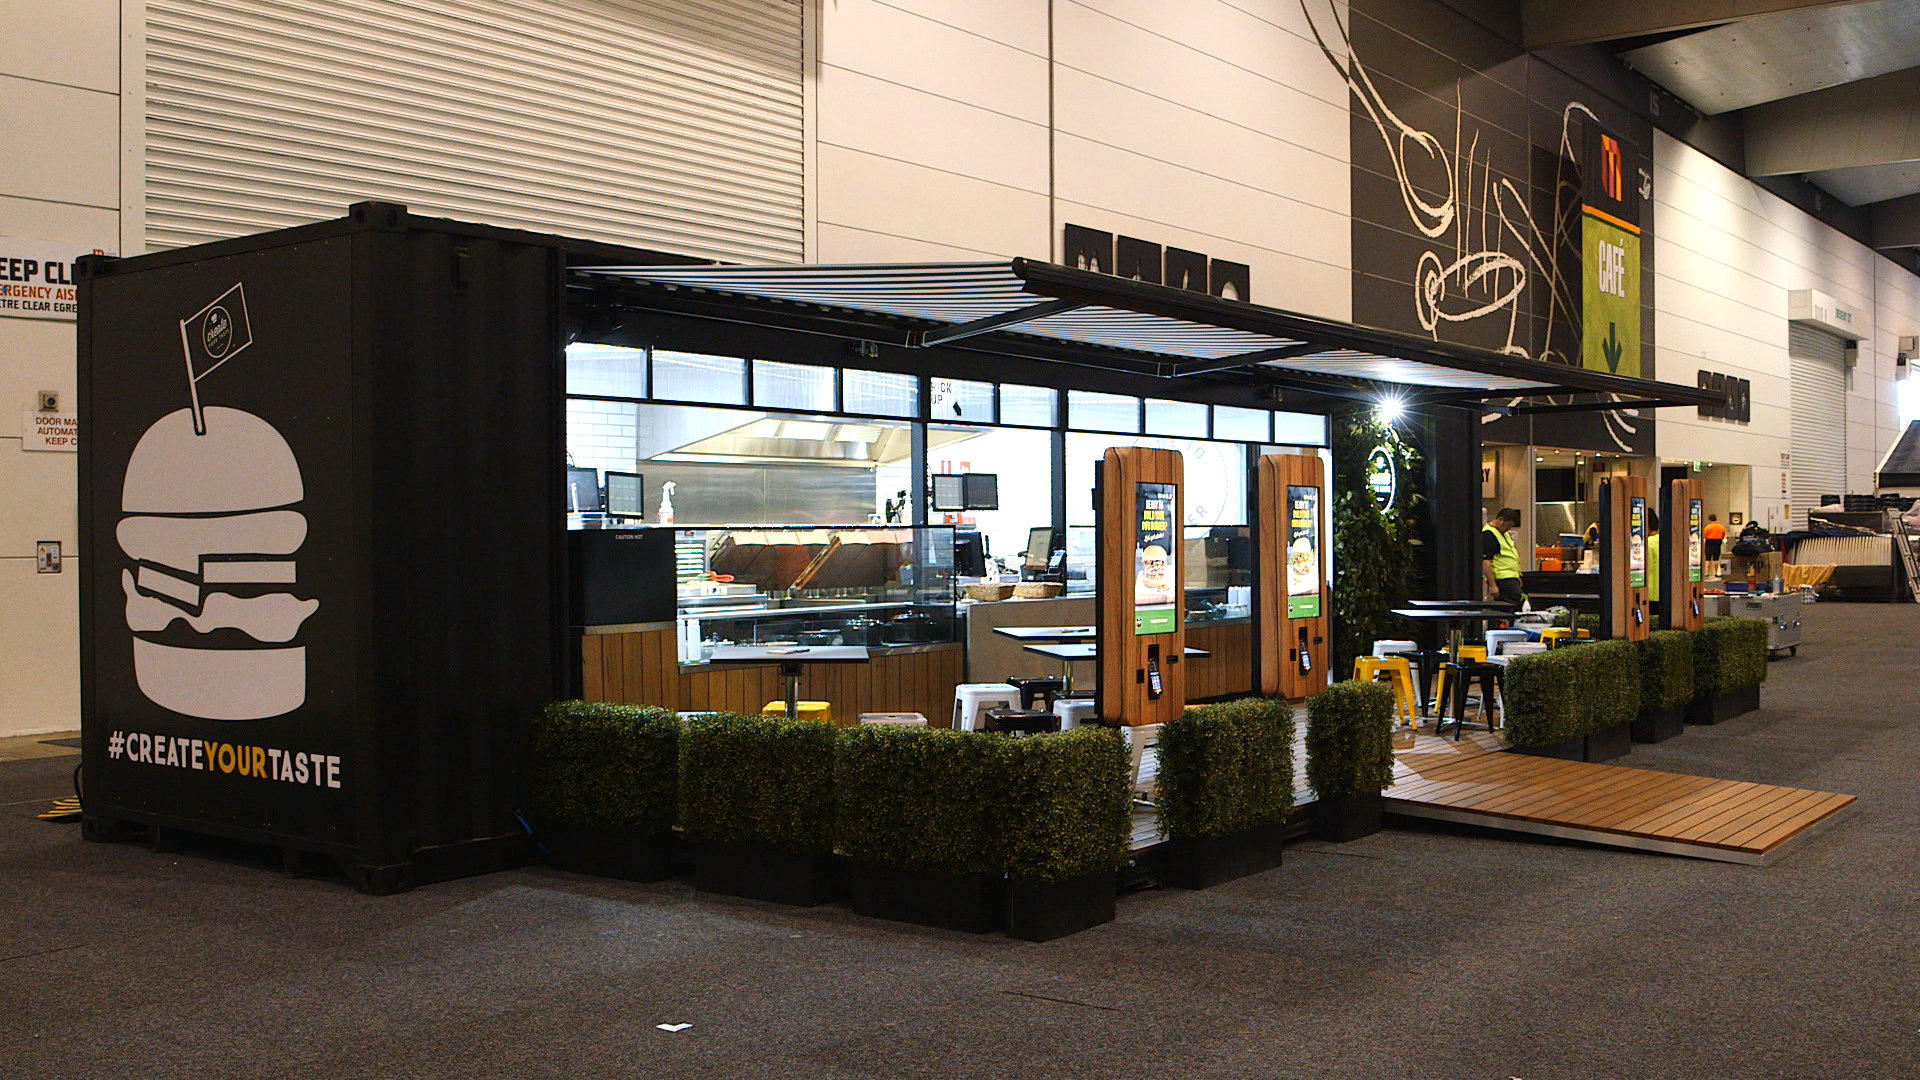 Standard Exhibition Stall : Top restaurants built inside a shipping container